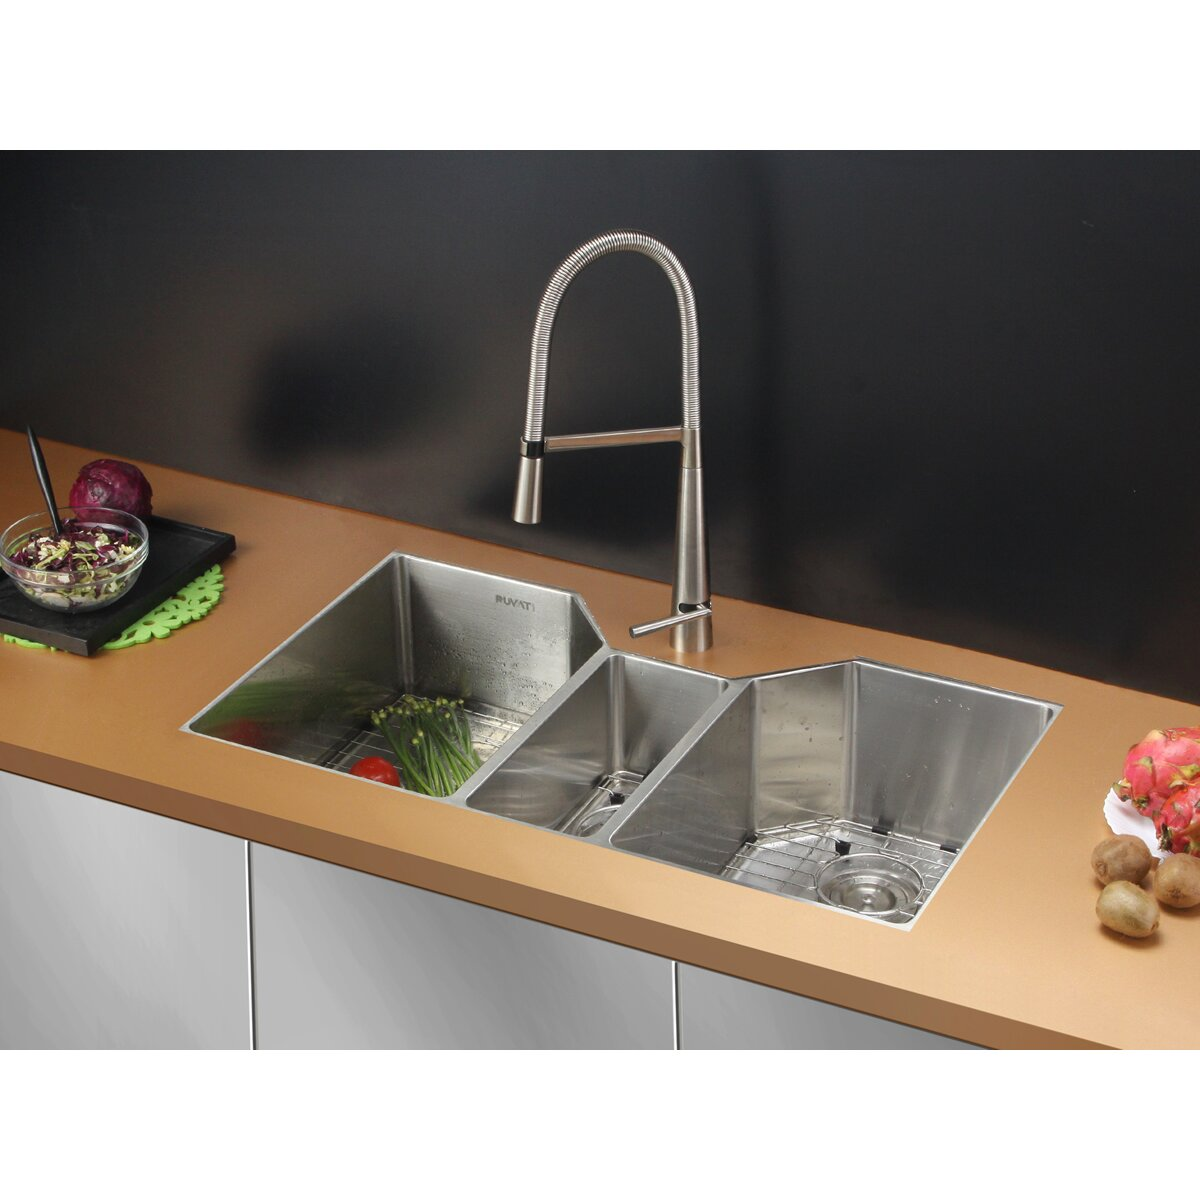 3 Bowl Kitchen Sink : Awesome Kitchen Sink Accessory Tall Kitchen Sink Vanity Regular ...